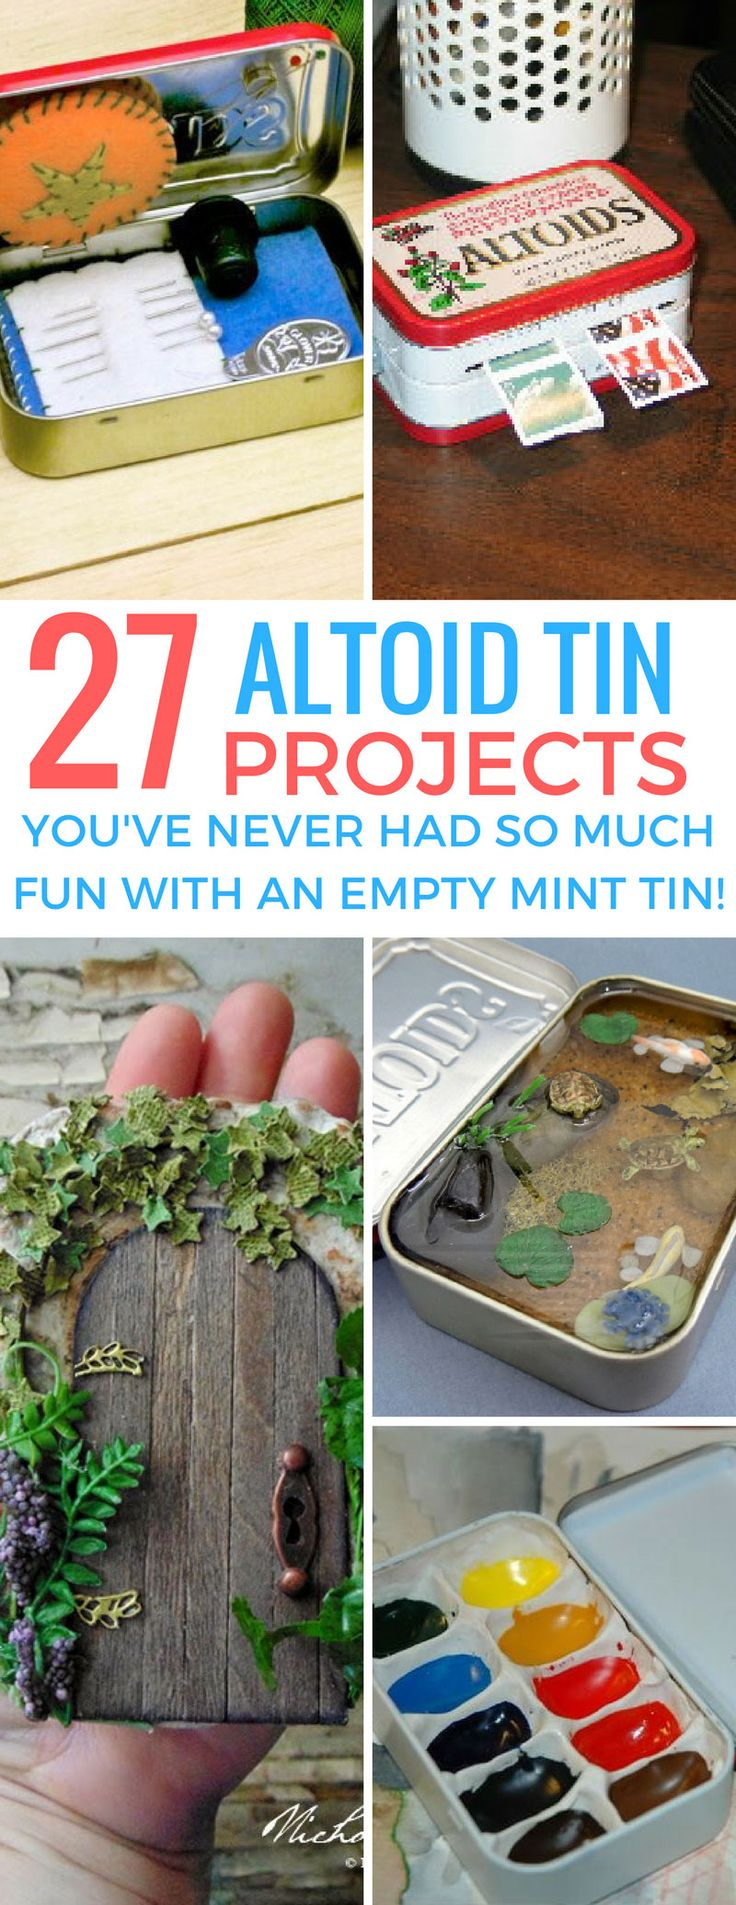 These altoid tin projects are so much fun! I really want to make that fish pond!